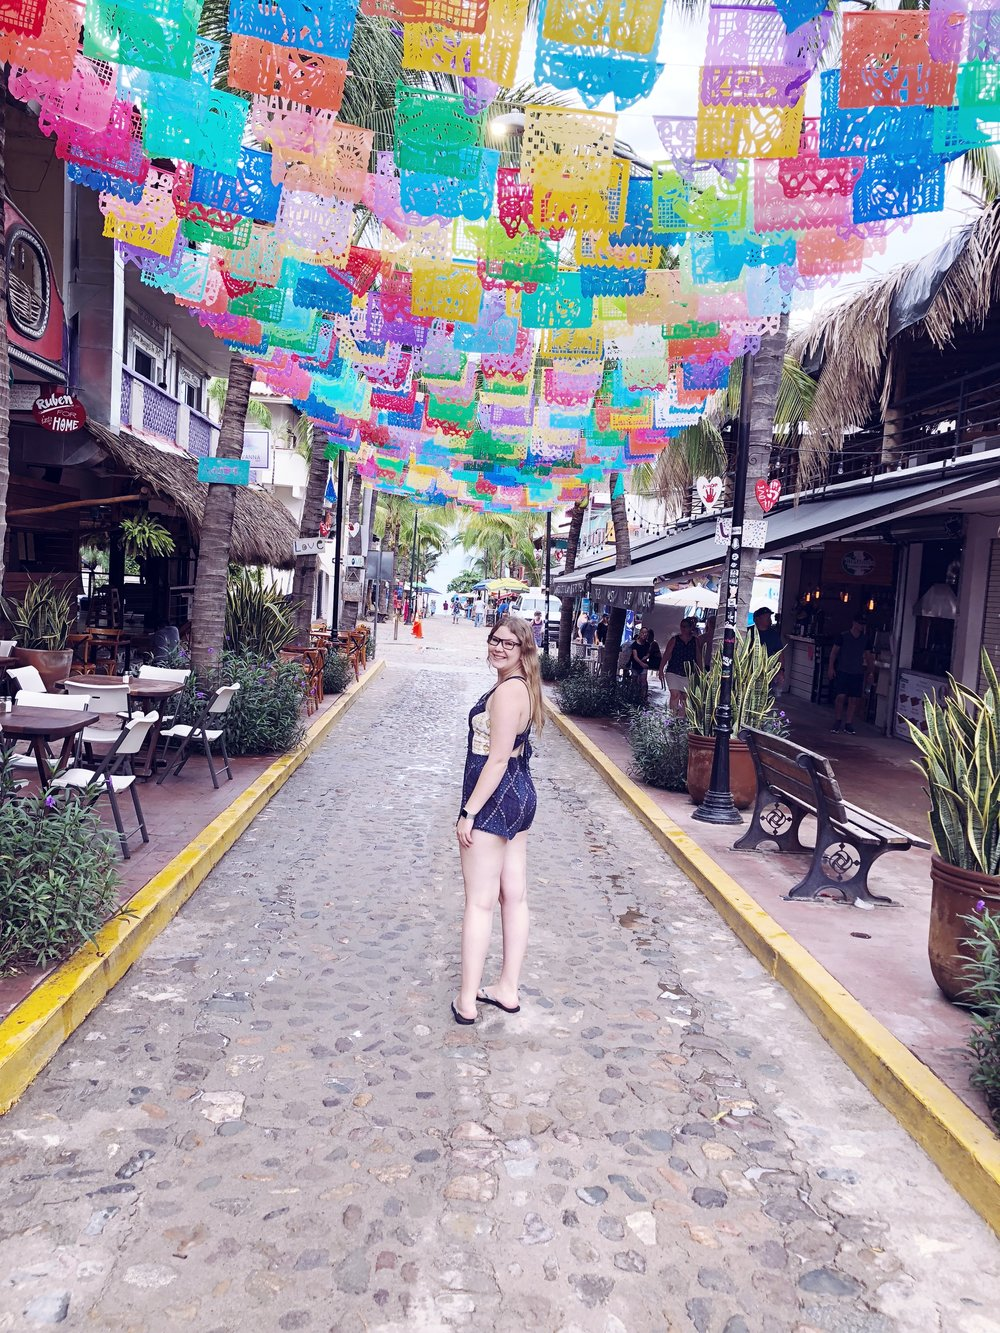 Sayulita is an amazing art and surf community about an hour north of Puerto Vallarta.   Kendall & Kylie romper.